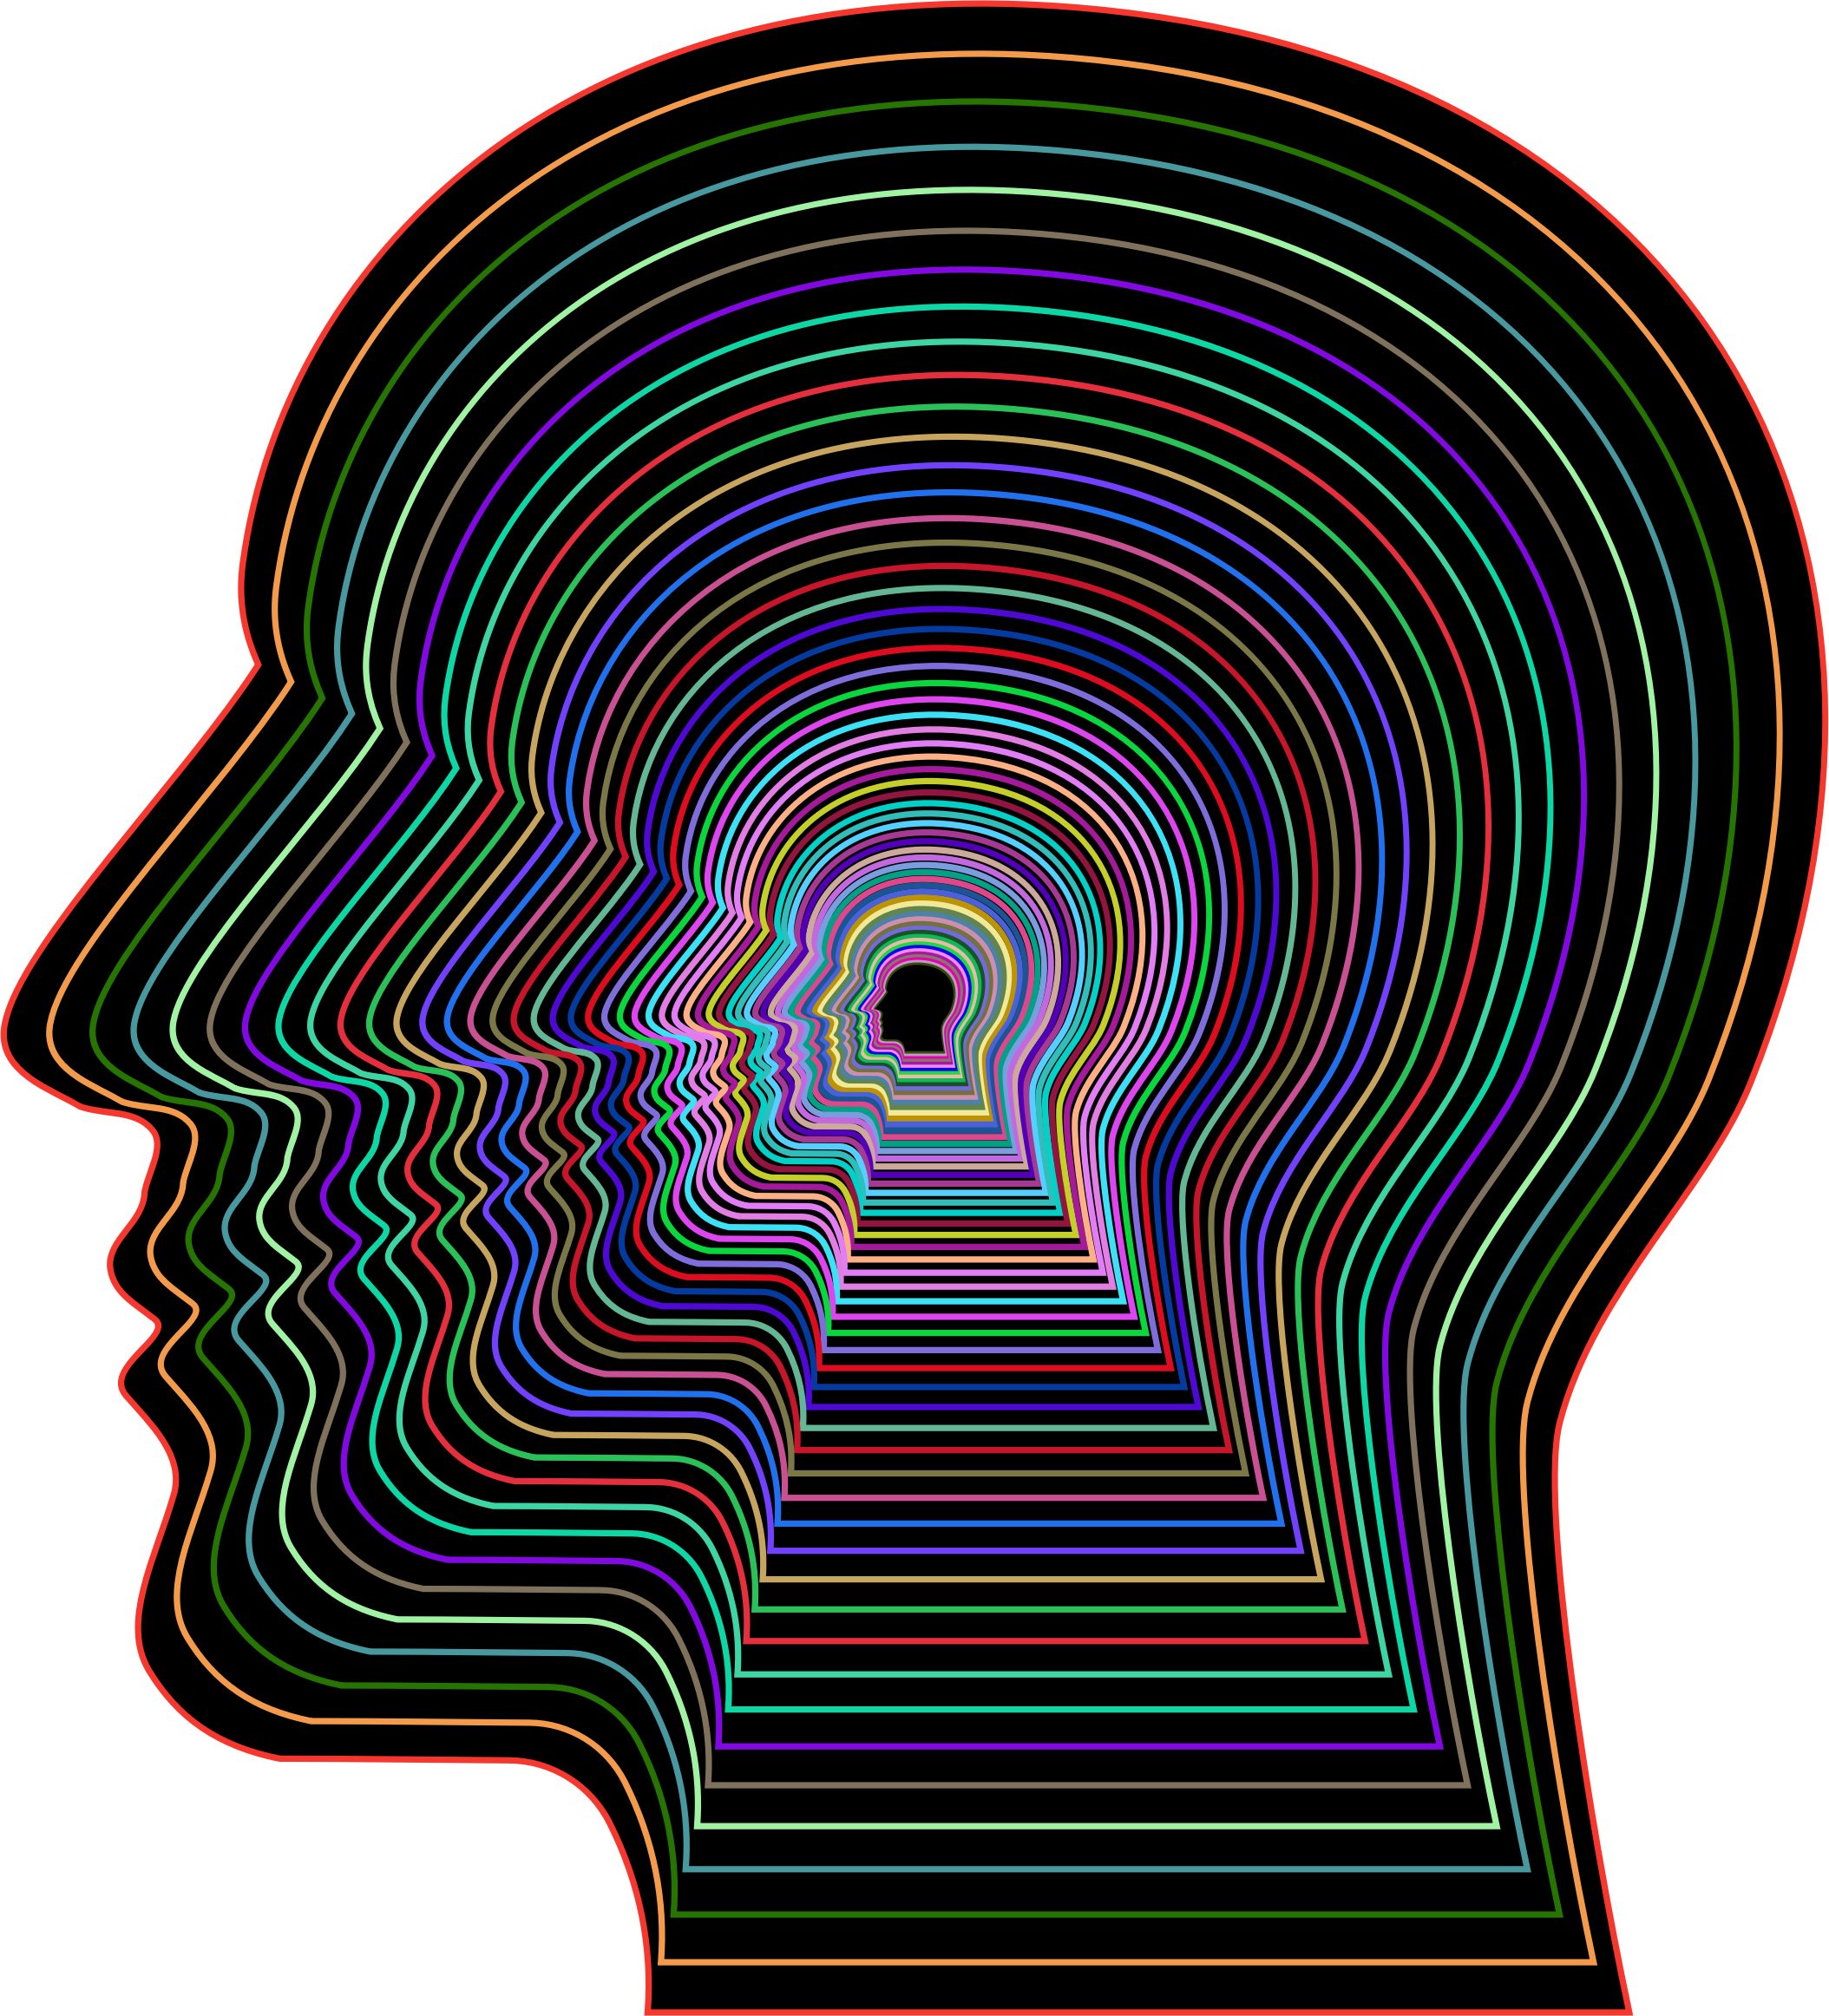 Head outline png. Prismatic man with background